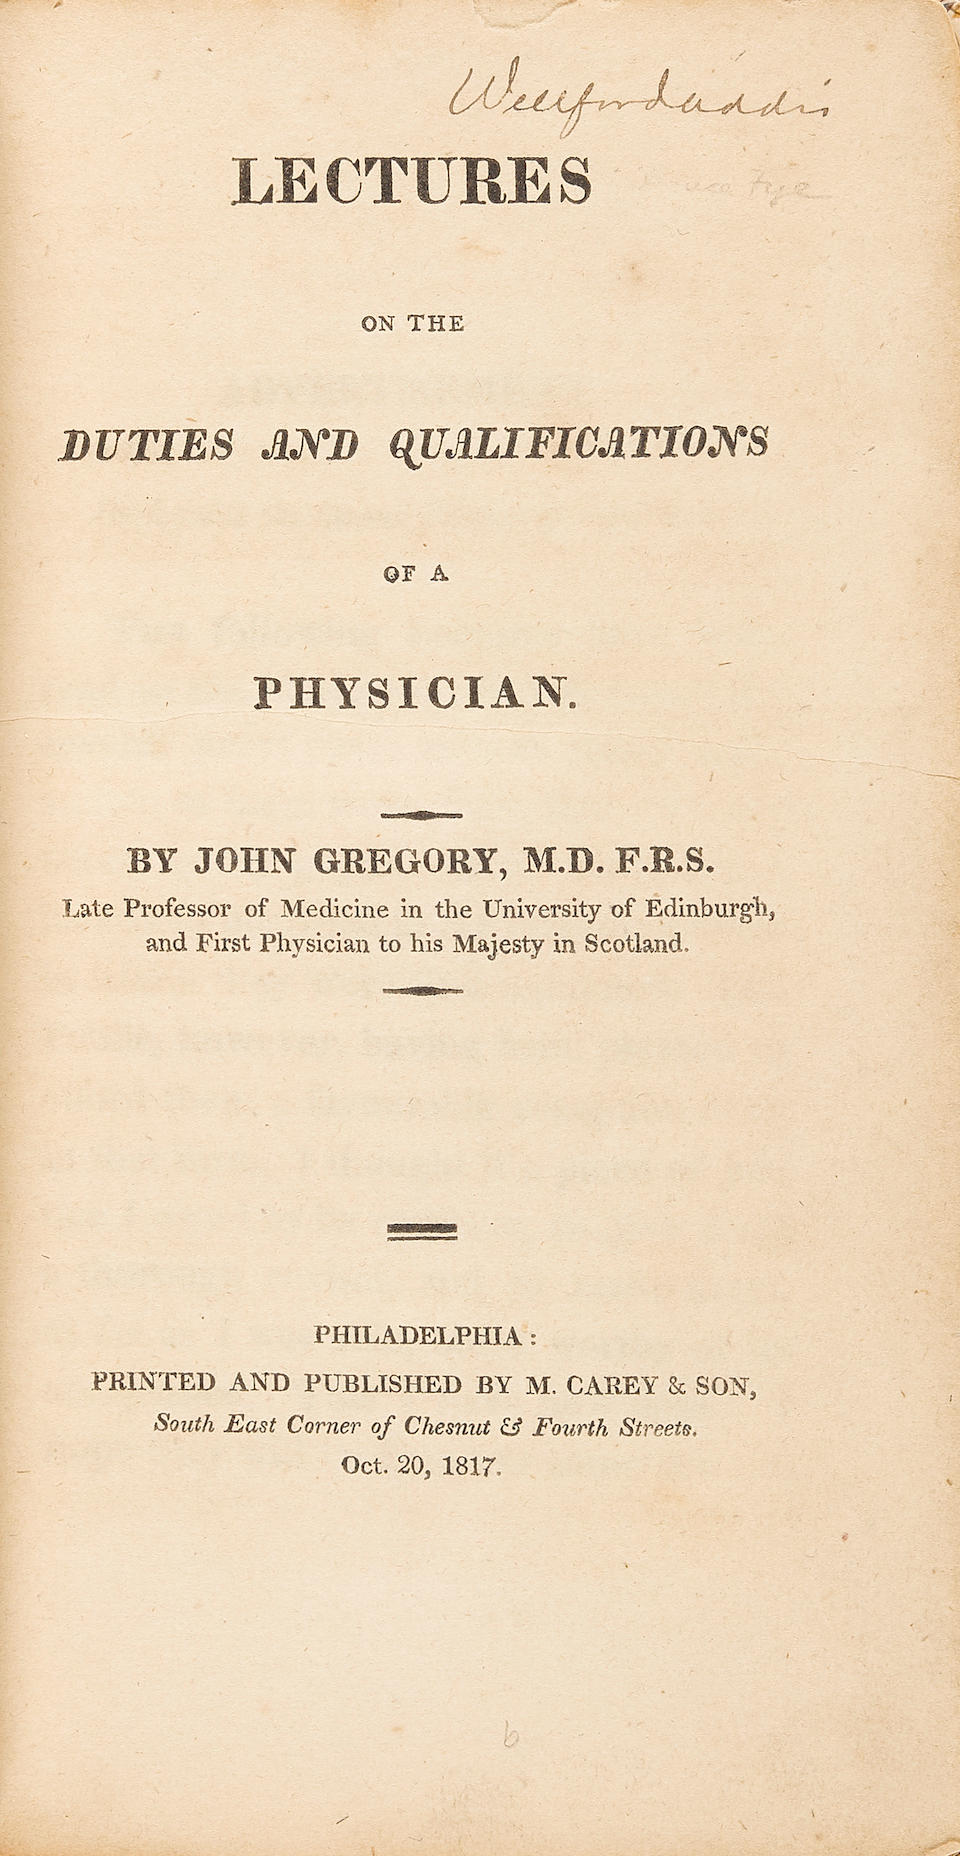 GREGORY, JOHN. 1724-1773. Observations on the Duties and Offices of a Physician; and on the Method of Prosecuting Enquiries in Philosophy London: W. Strahan and T. Cadell, 1770.